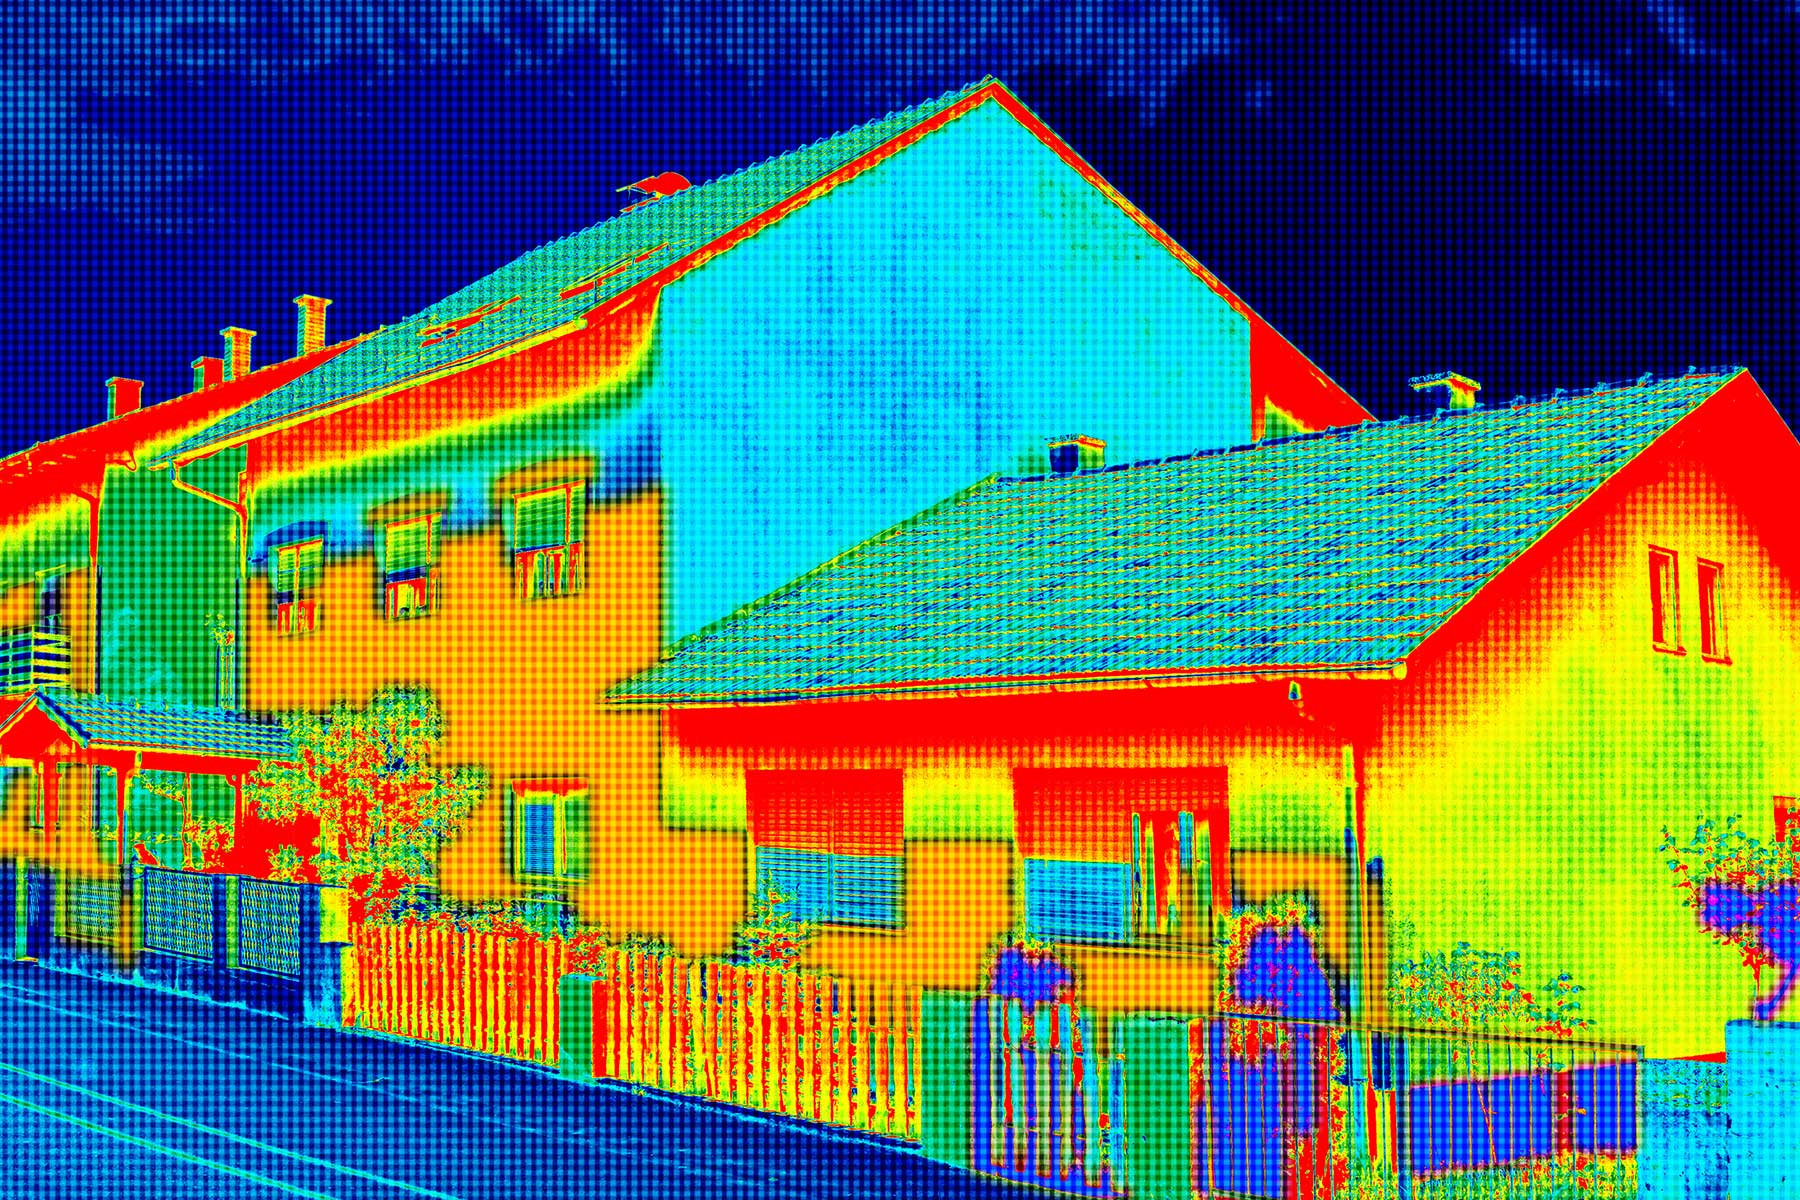 thermal-imaging-non-specific-town